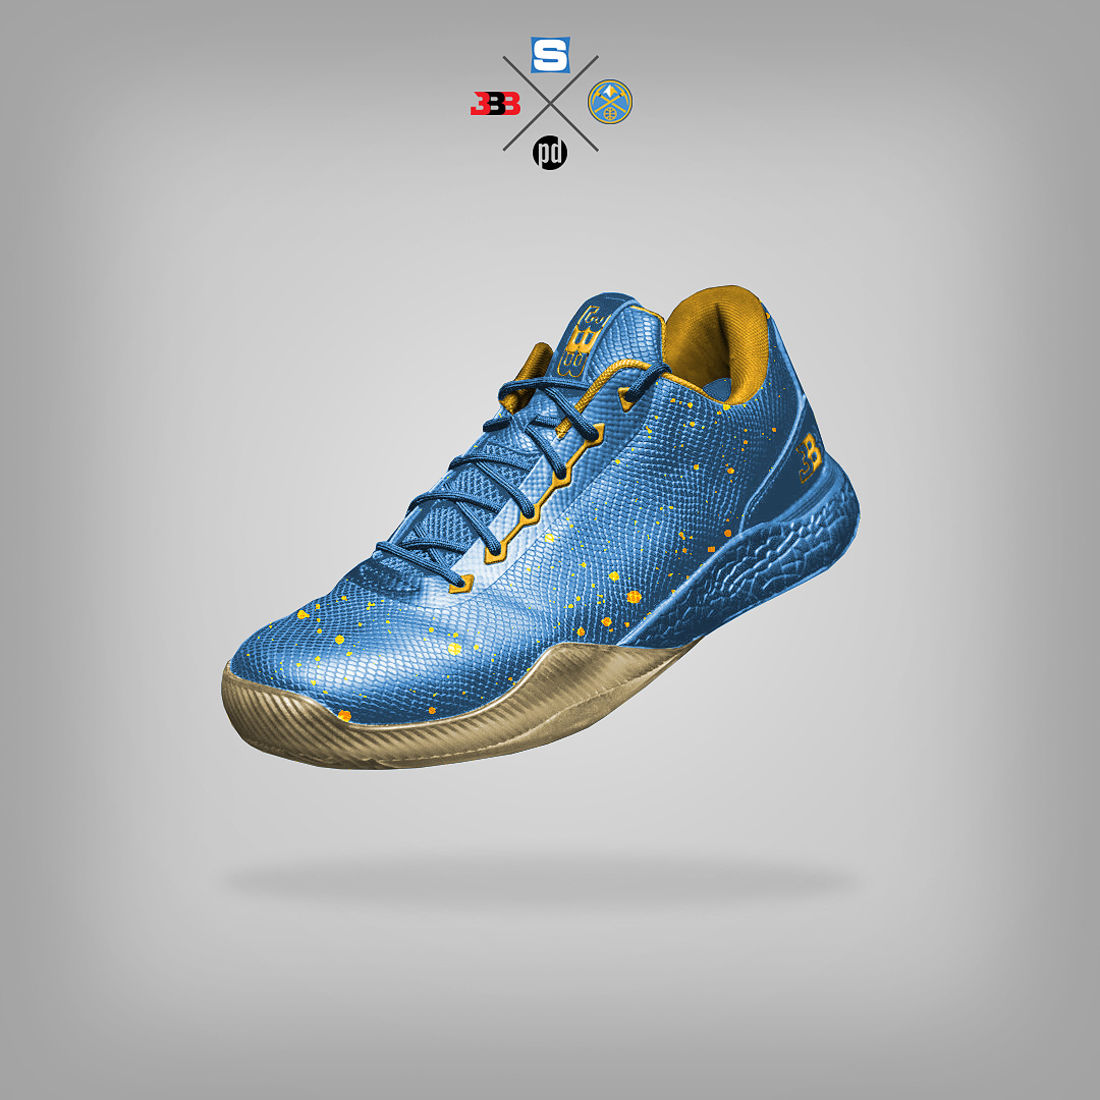 us map nba teams with Lonzo Ball Big Baller Brand Sneakers Nba Colorways on Capitals Boggle besides 326268 further Wells Fargo Center in addition Kjzz Tv Special Showcases Utah Jazz Fans likewise 1.